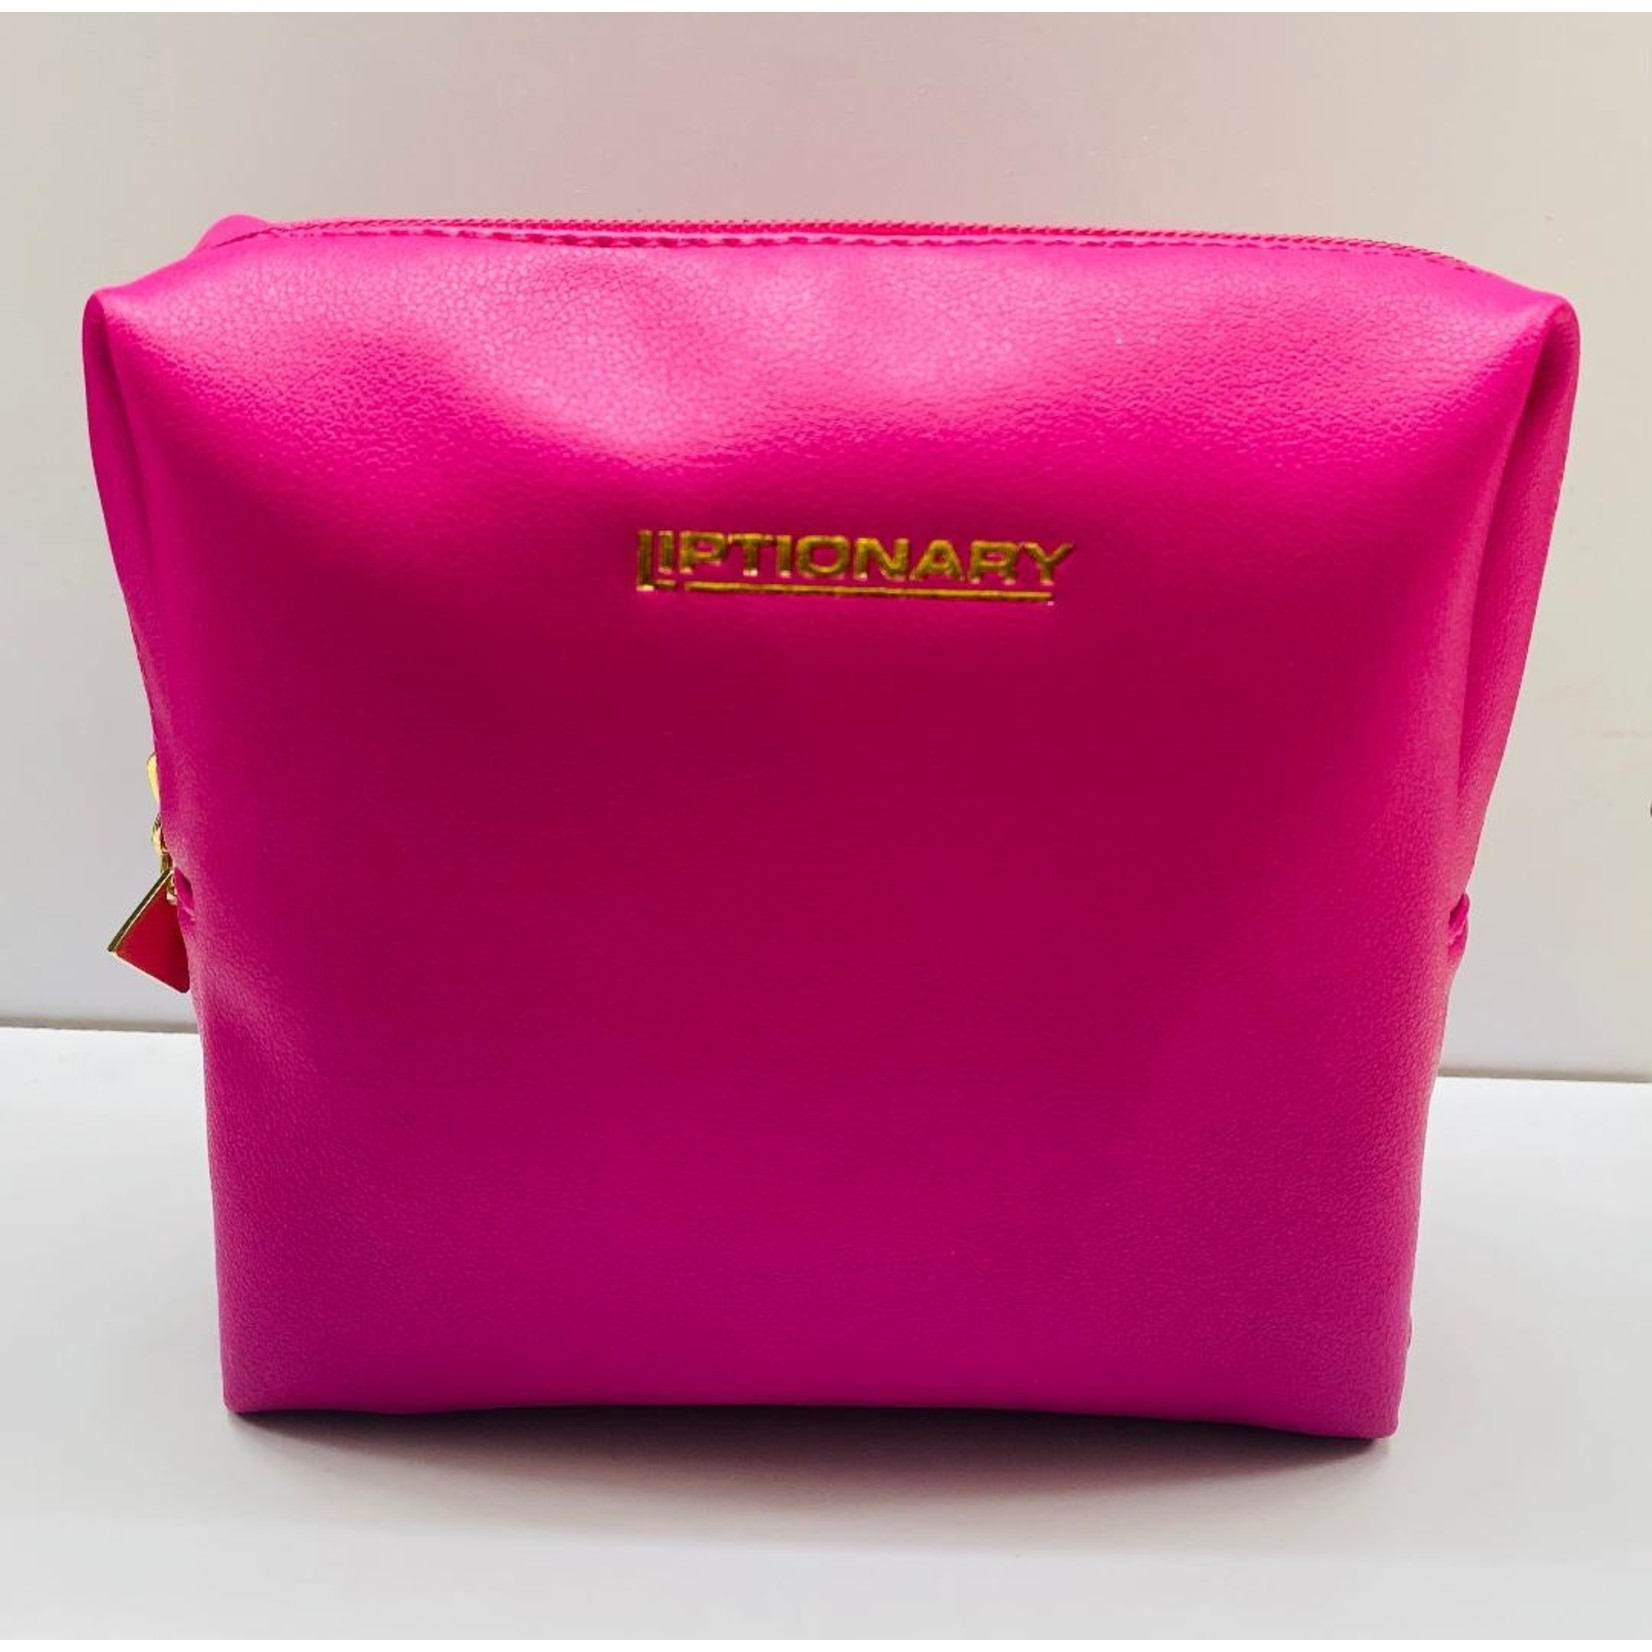 Vegan Leather Lip Bag - Hot Pink